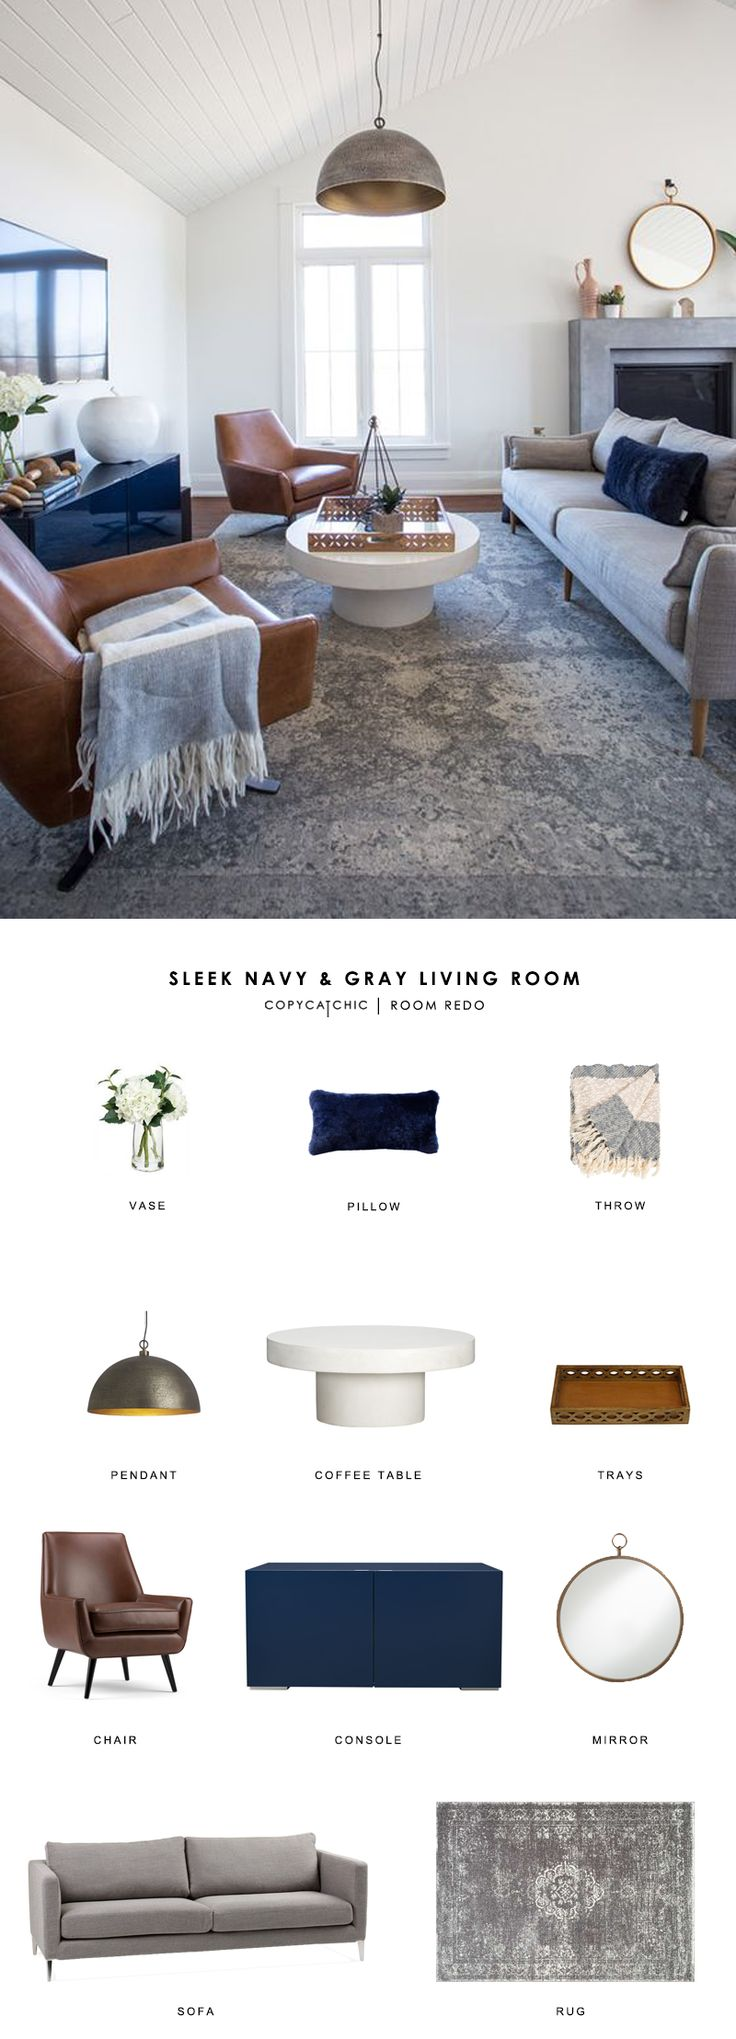 Copy Cat Chic Room Redo | Sleek Navy and Gray Living Room